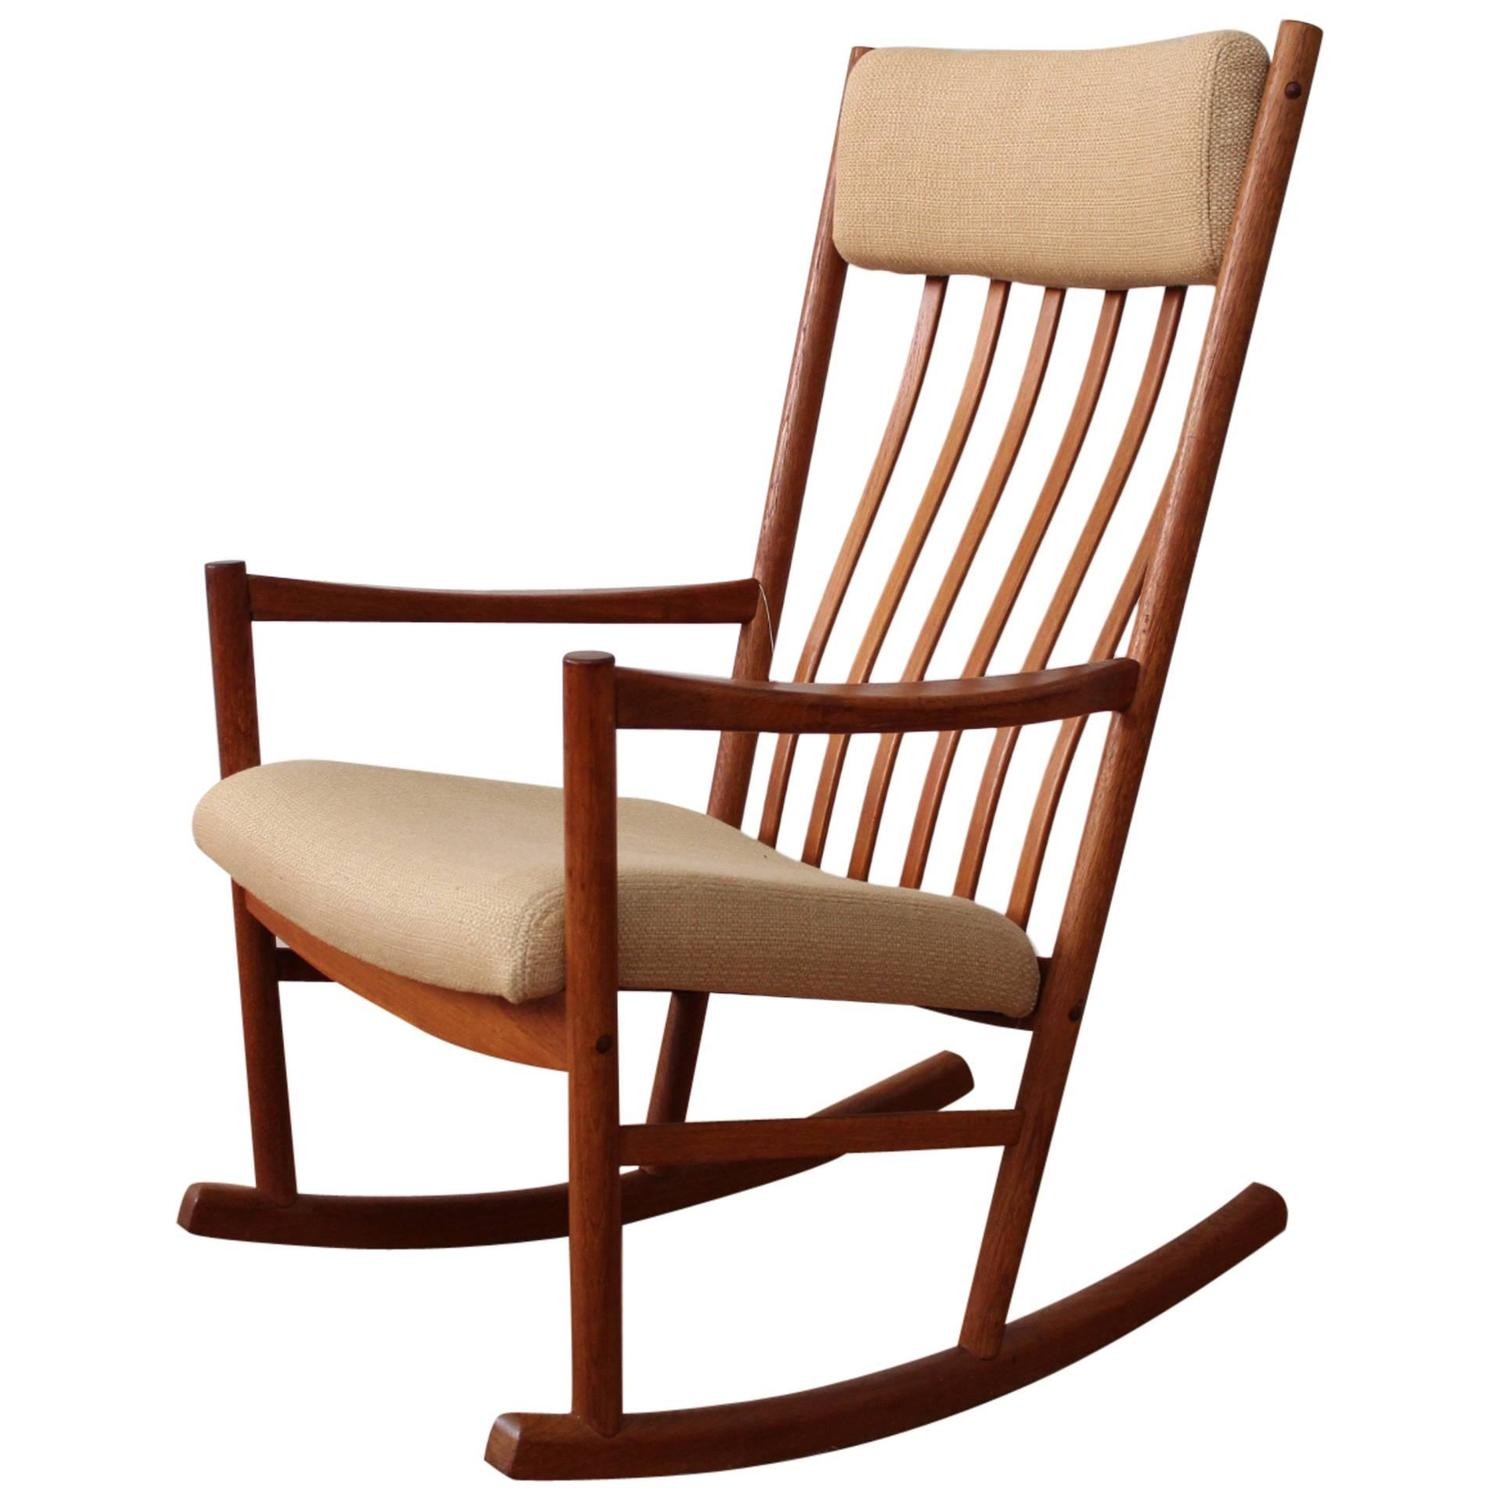 Danish teak rocking chair for Rocking chair